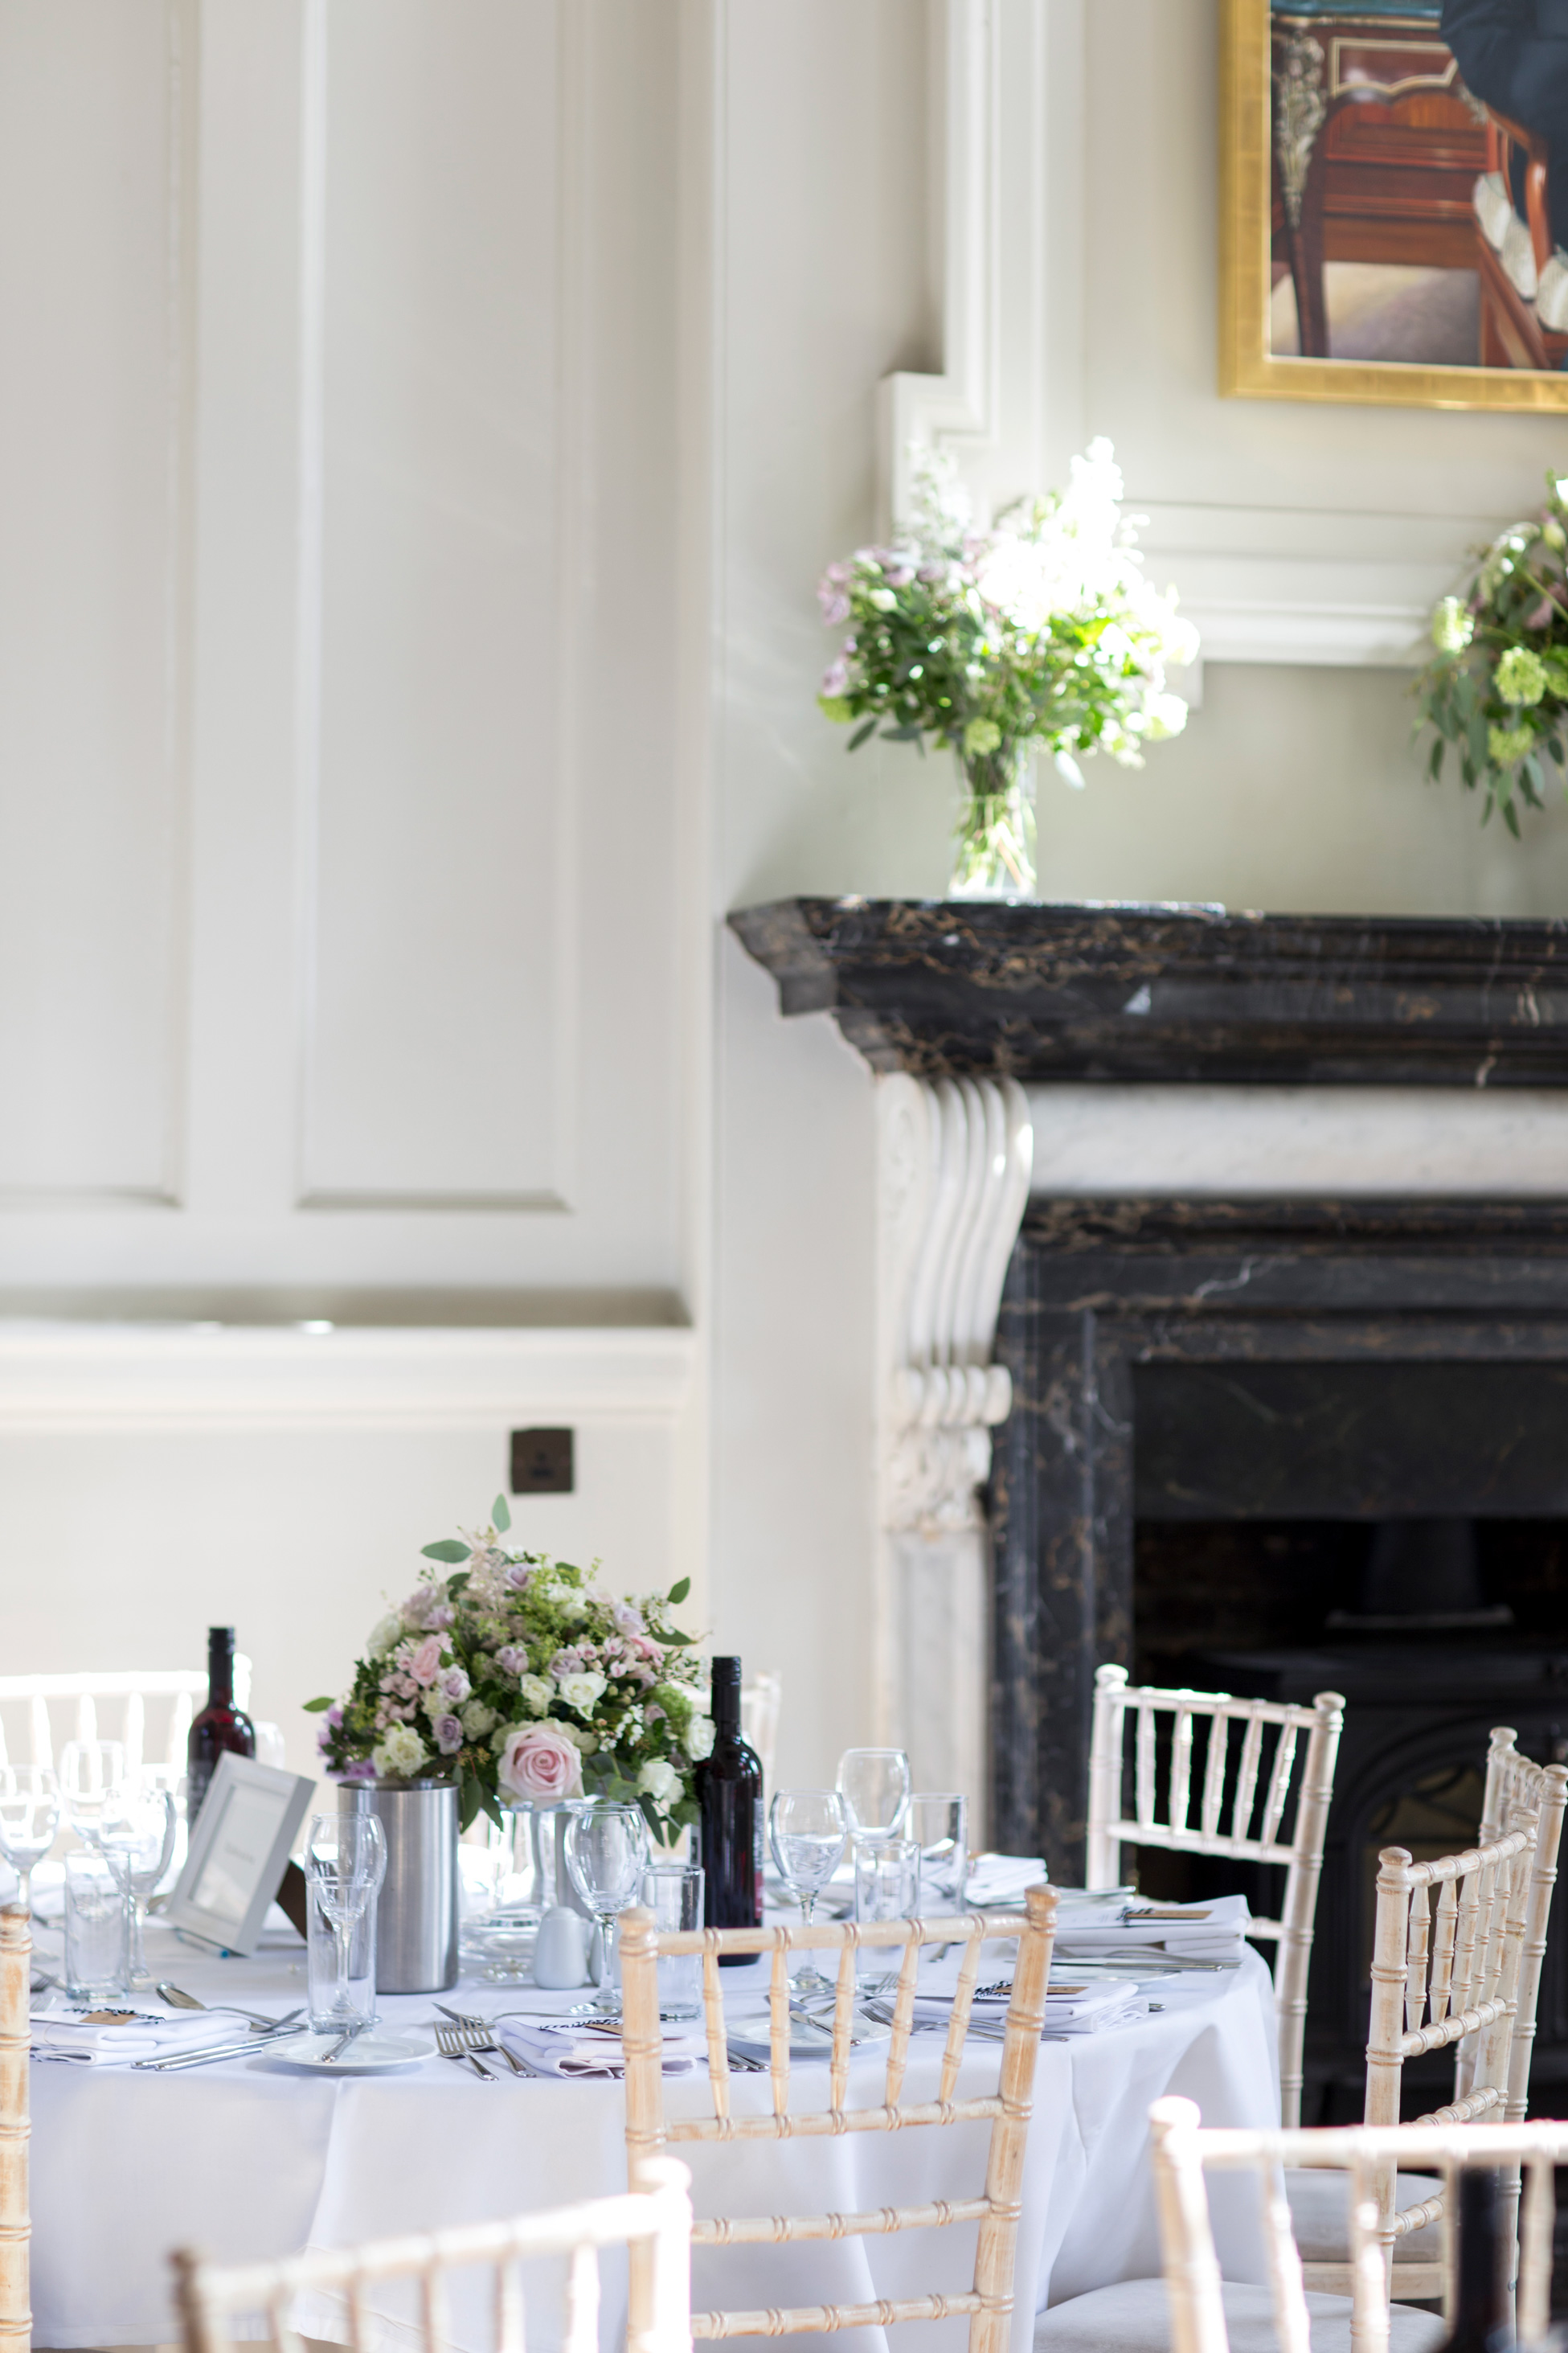 Chairs, Fireplace, Chicheley Hall, White, Green flowers, Buckinghamshire Wedding,